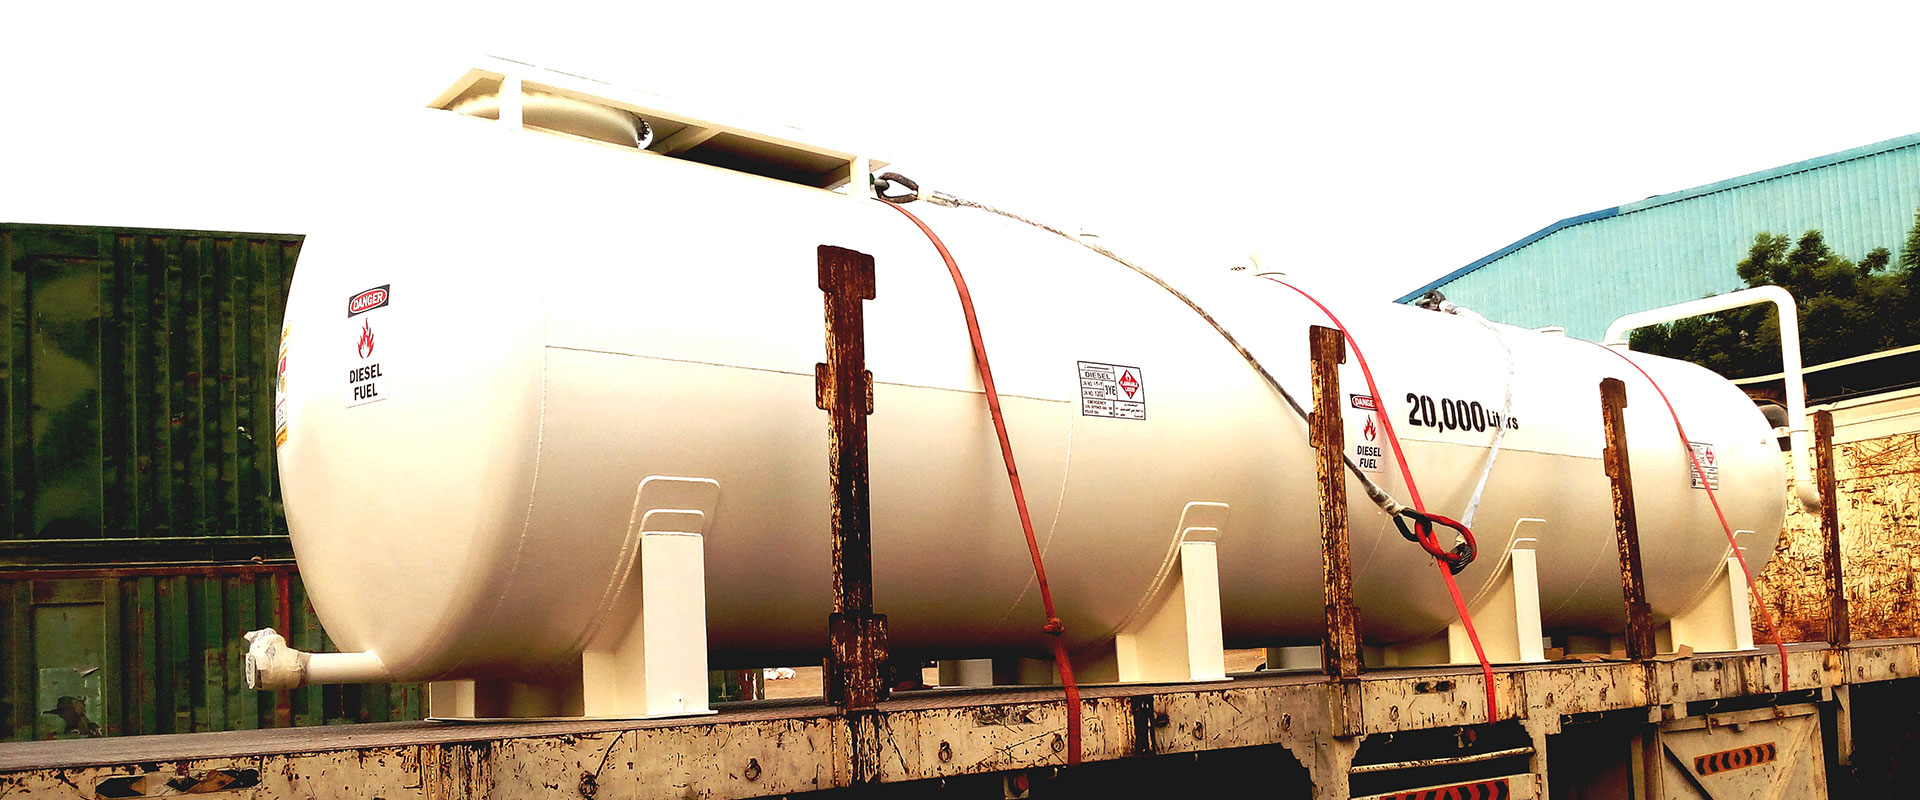 Diesel storage tanks manufacturer in UAE